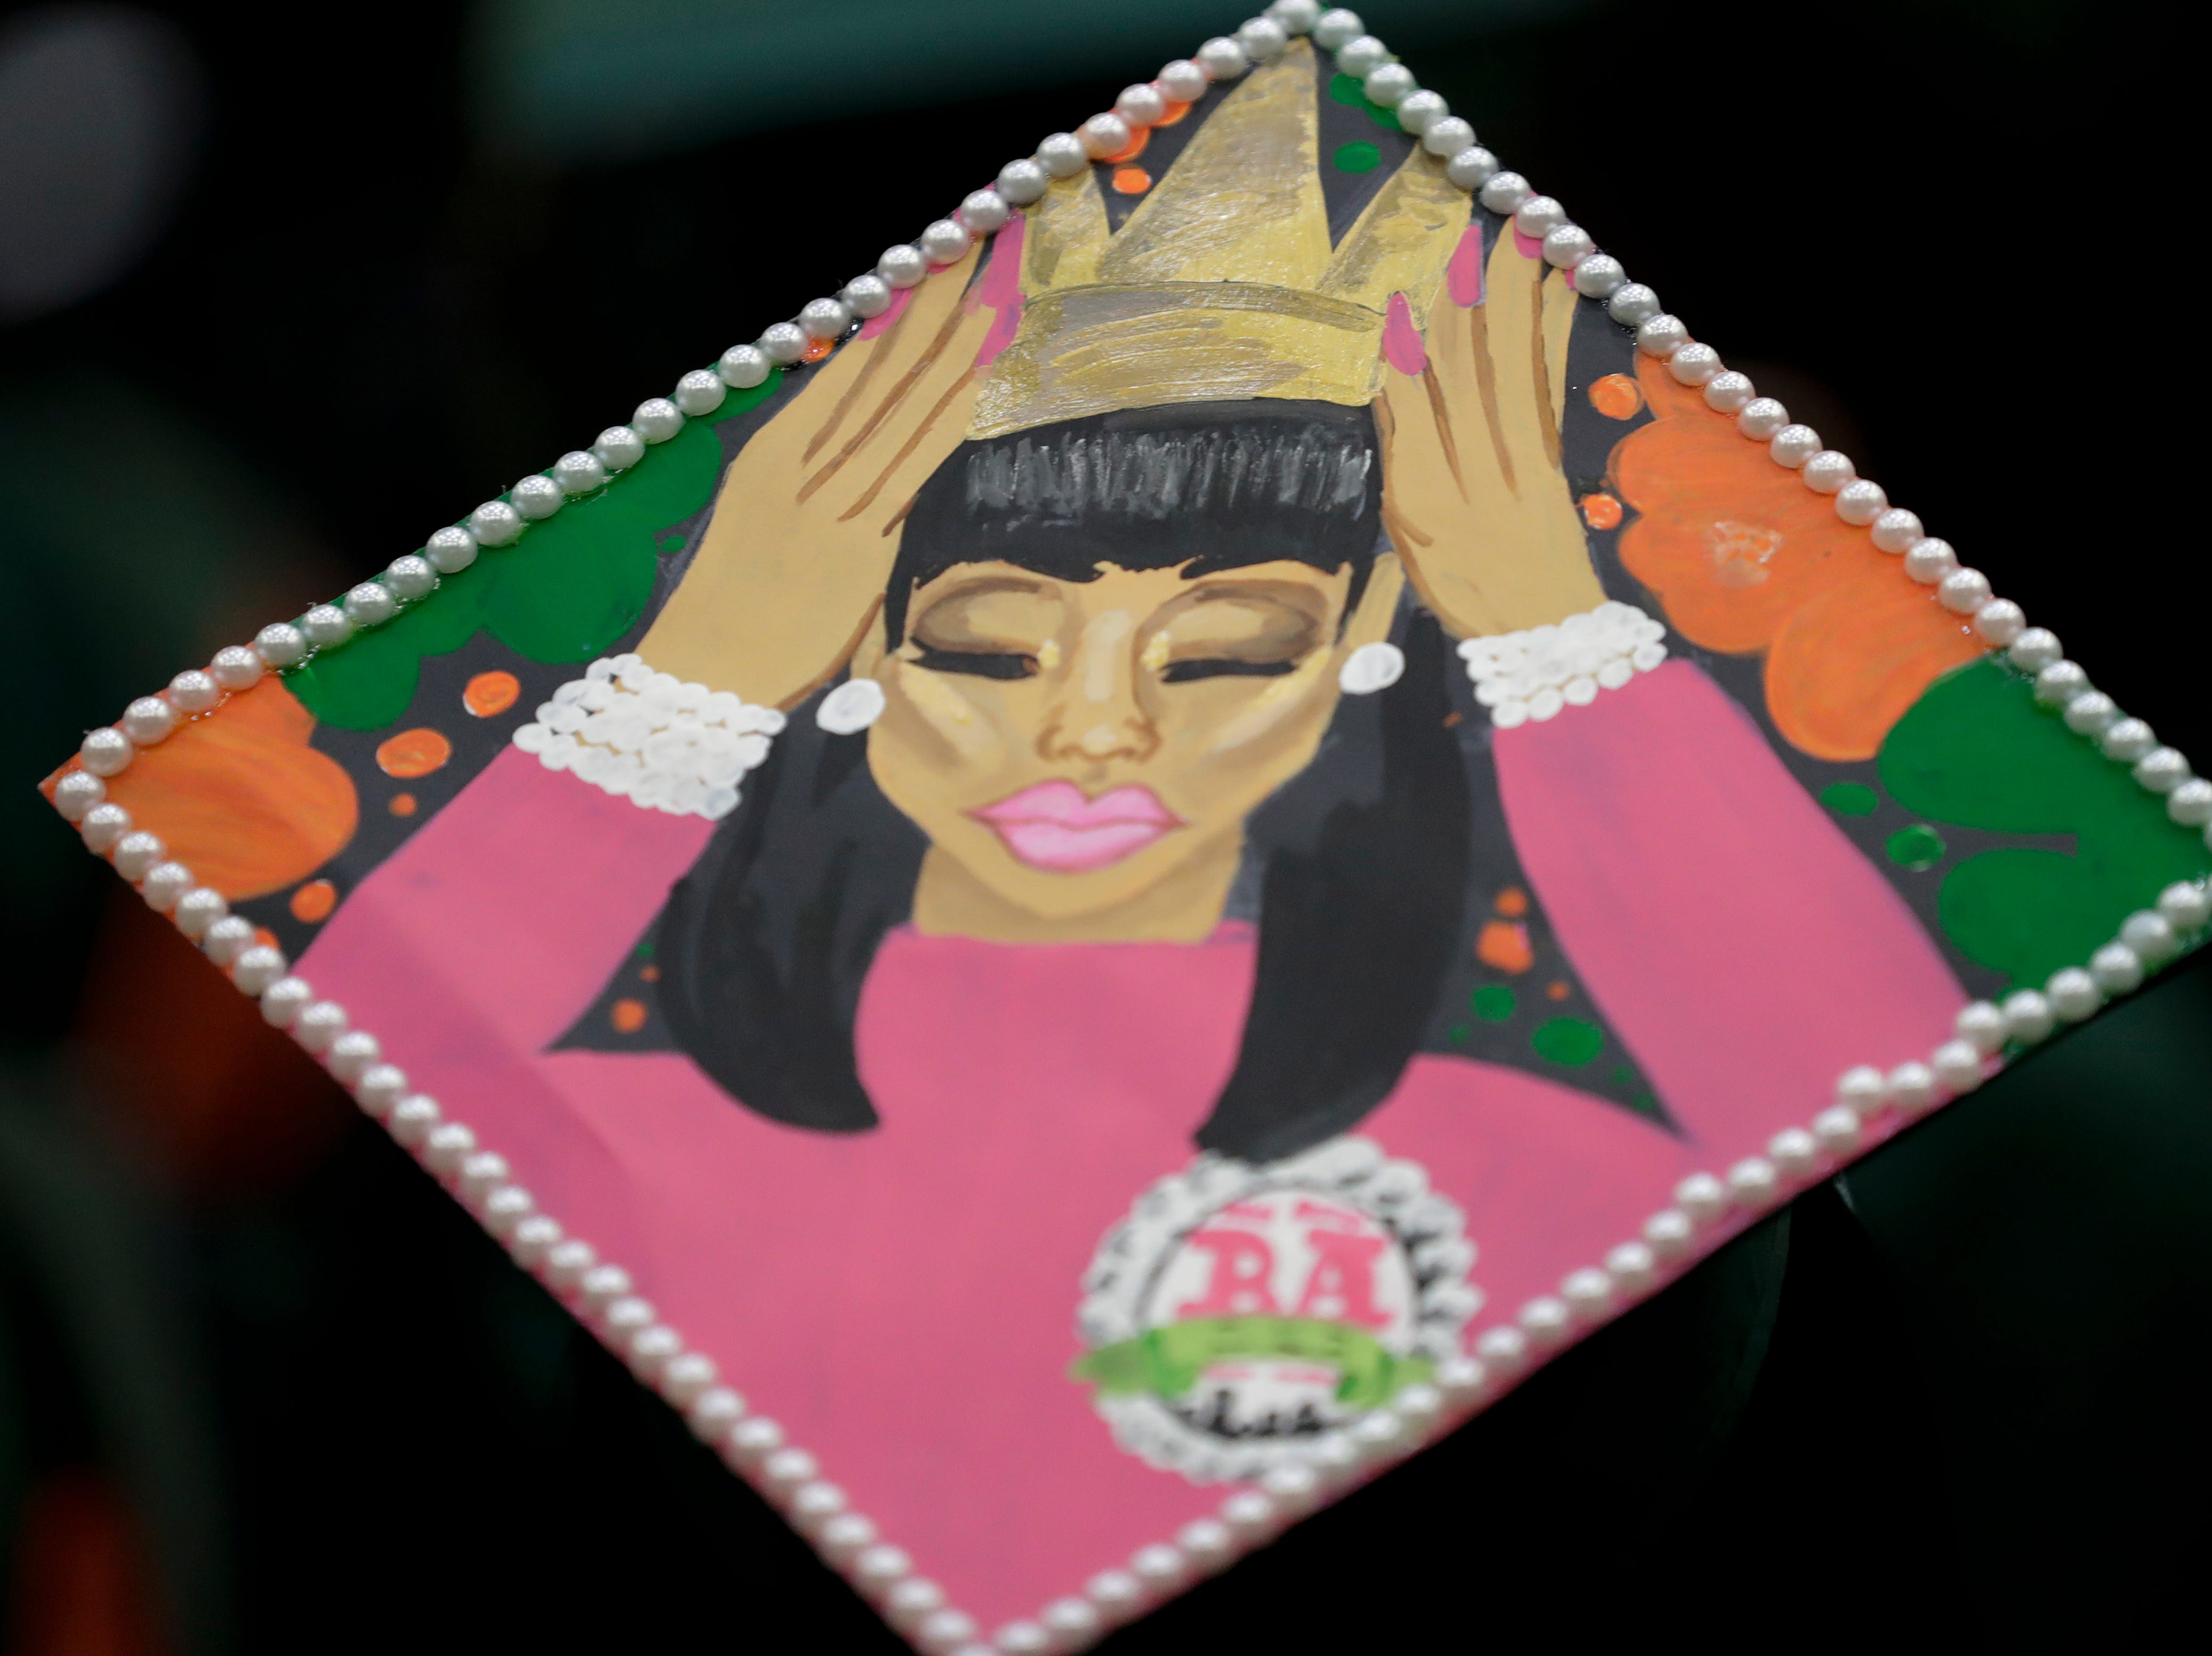 Florida A&M University celebrated spring commencement Friday, May 3, 2019.